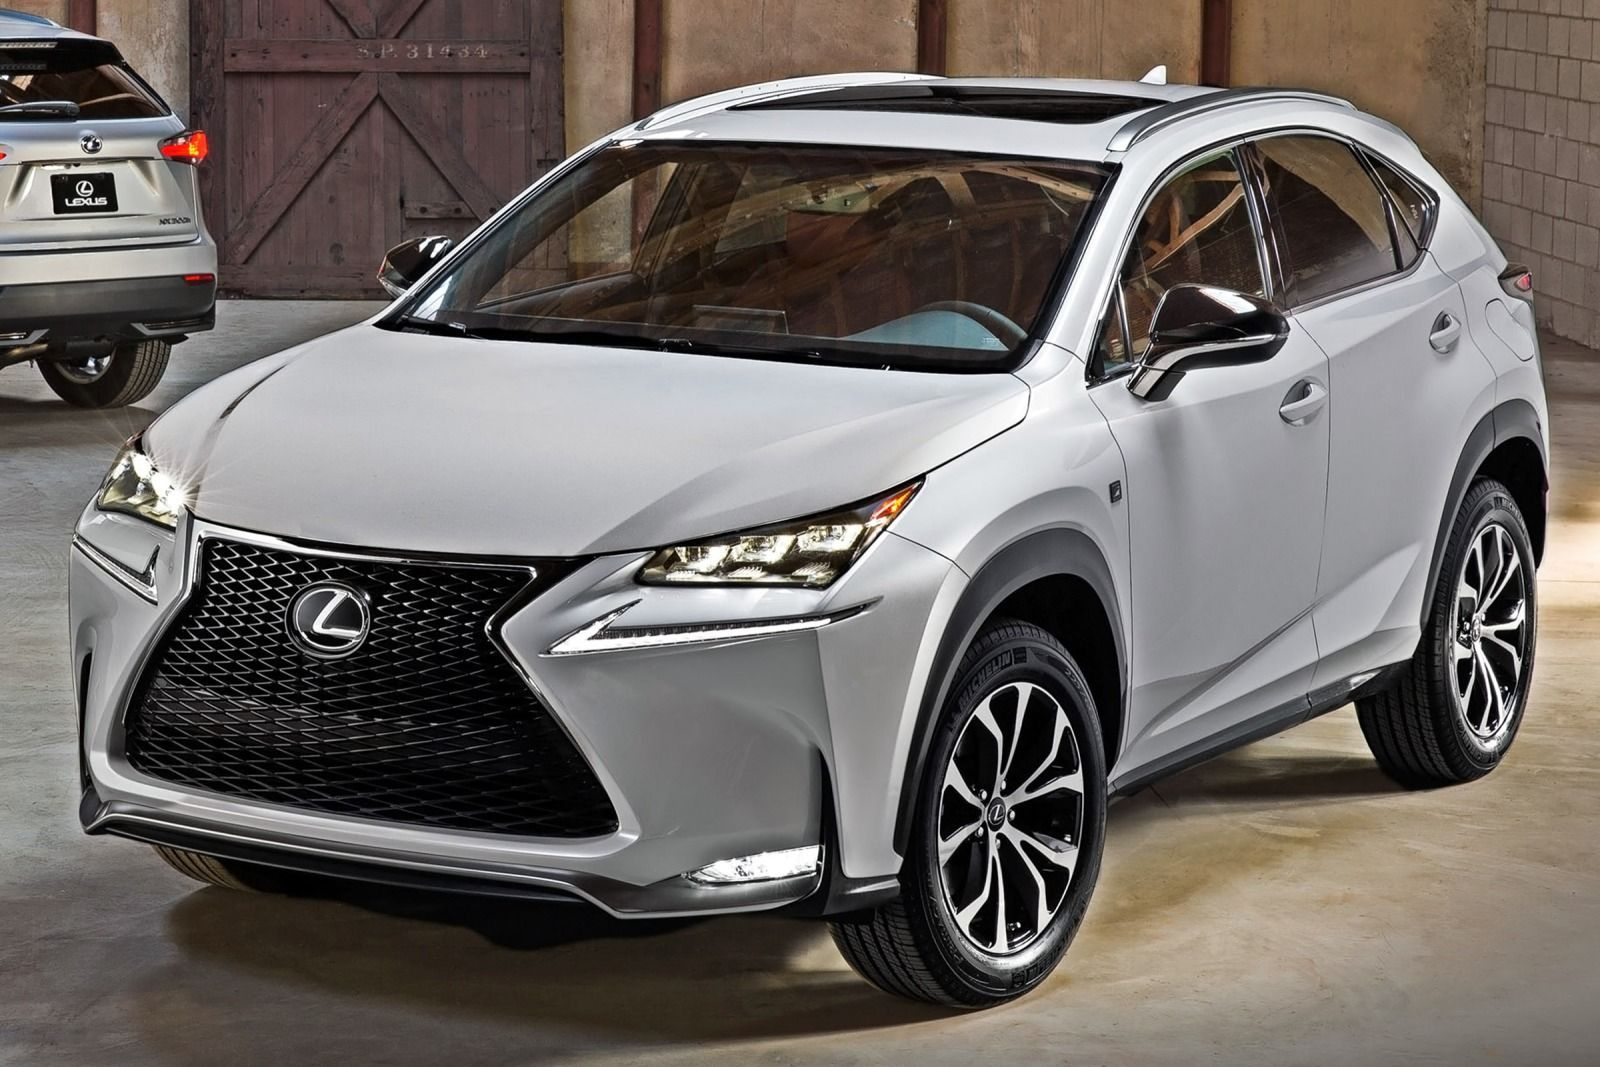 Talking About The Model 2016 Lexus Rx We Should Underline Some Features Firstly This Car Survived Three Eras And Still Remains A Clical One In Its